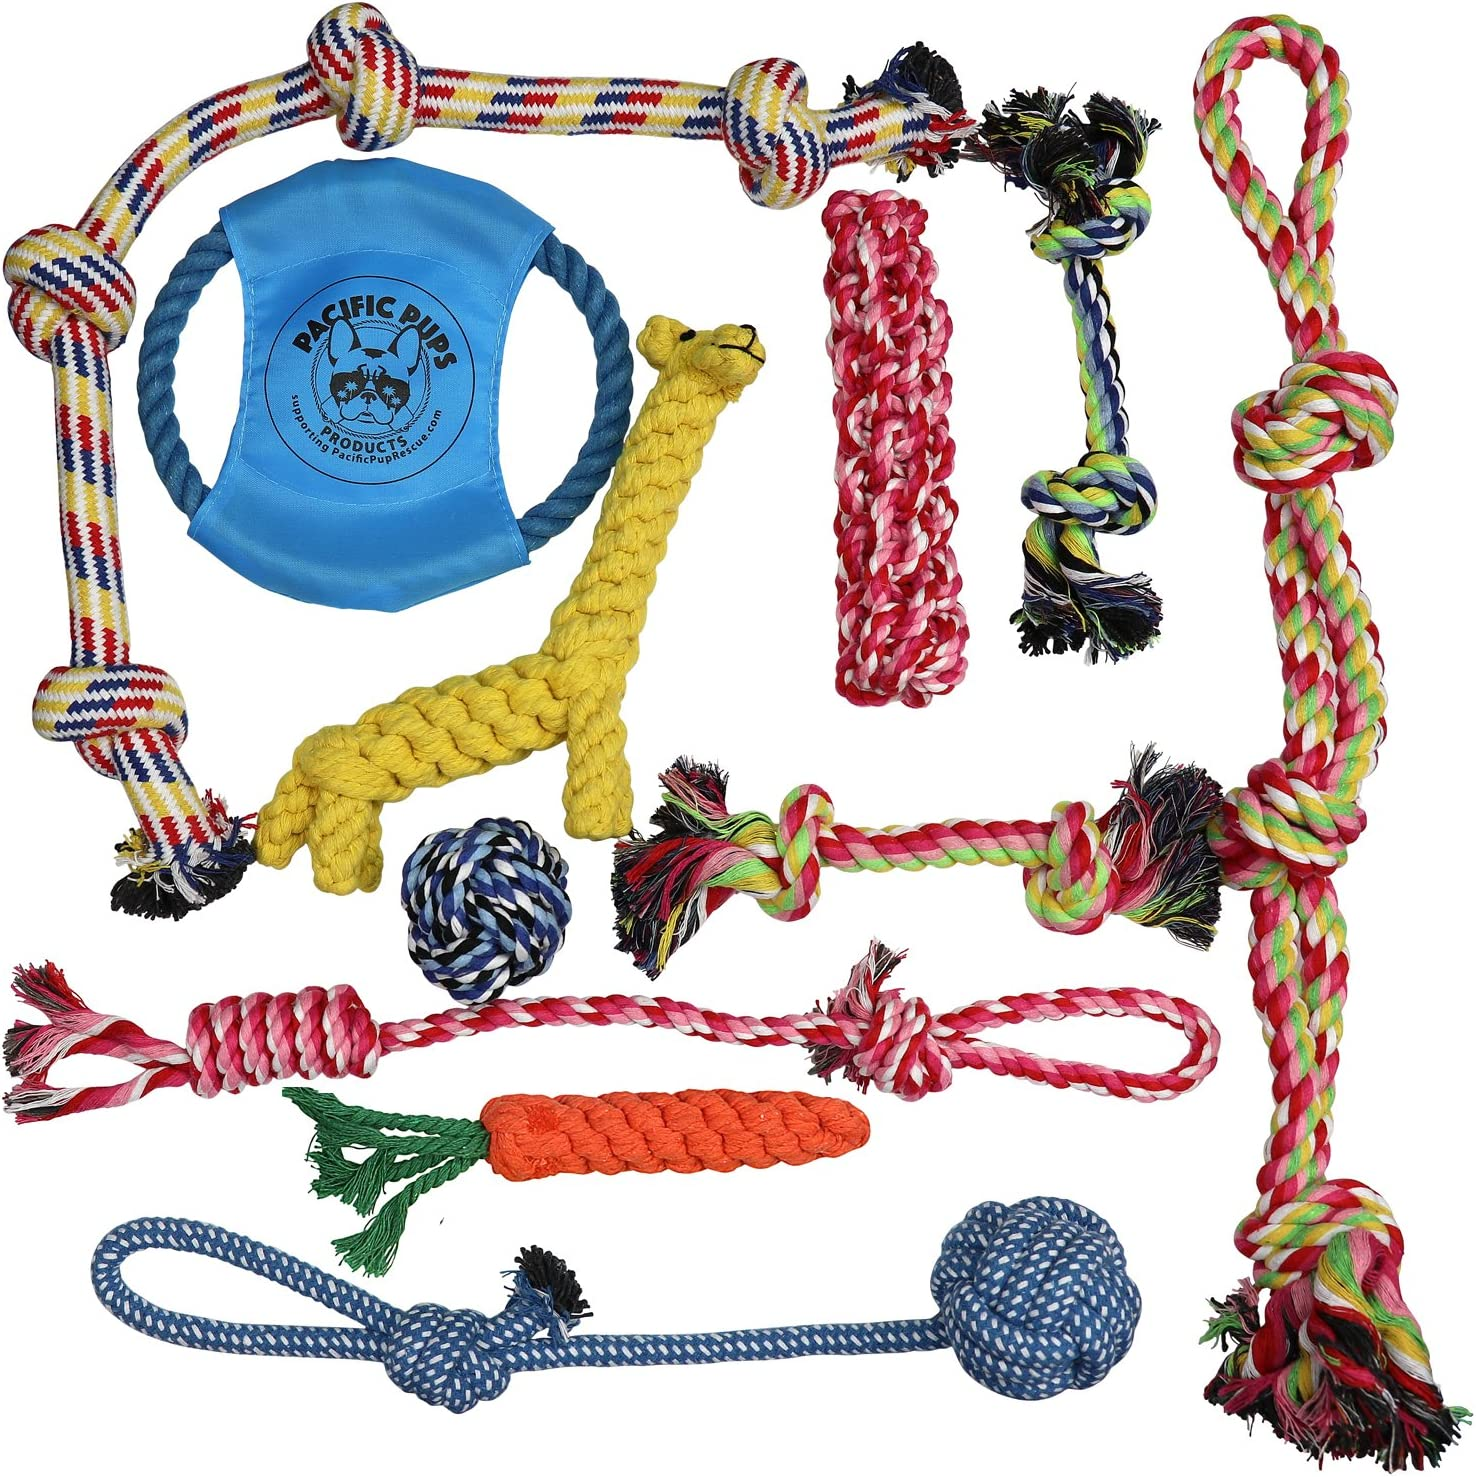 11 Piece Dog Rope Toys